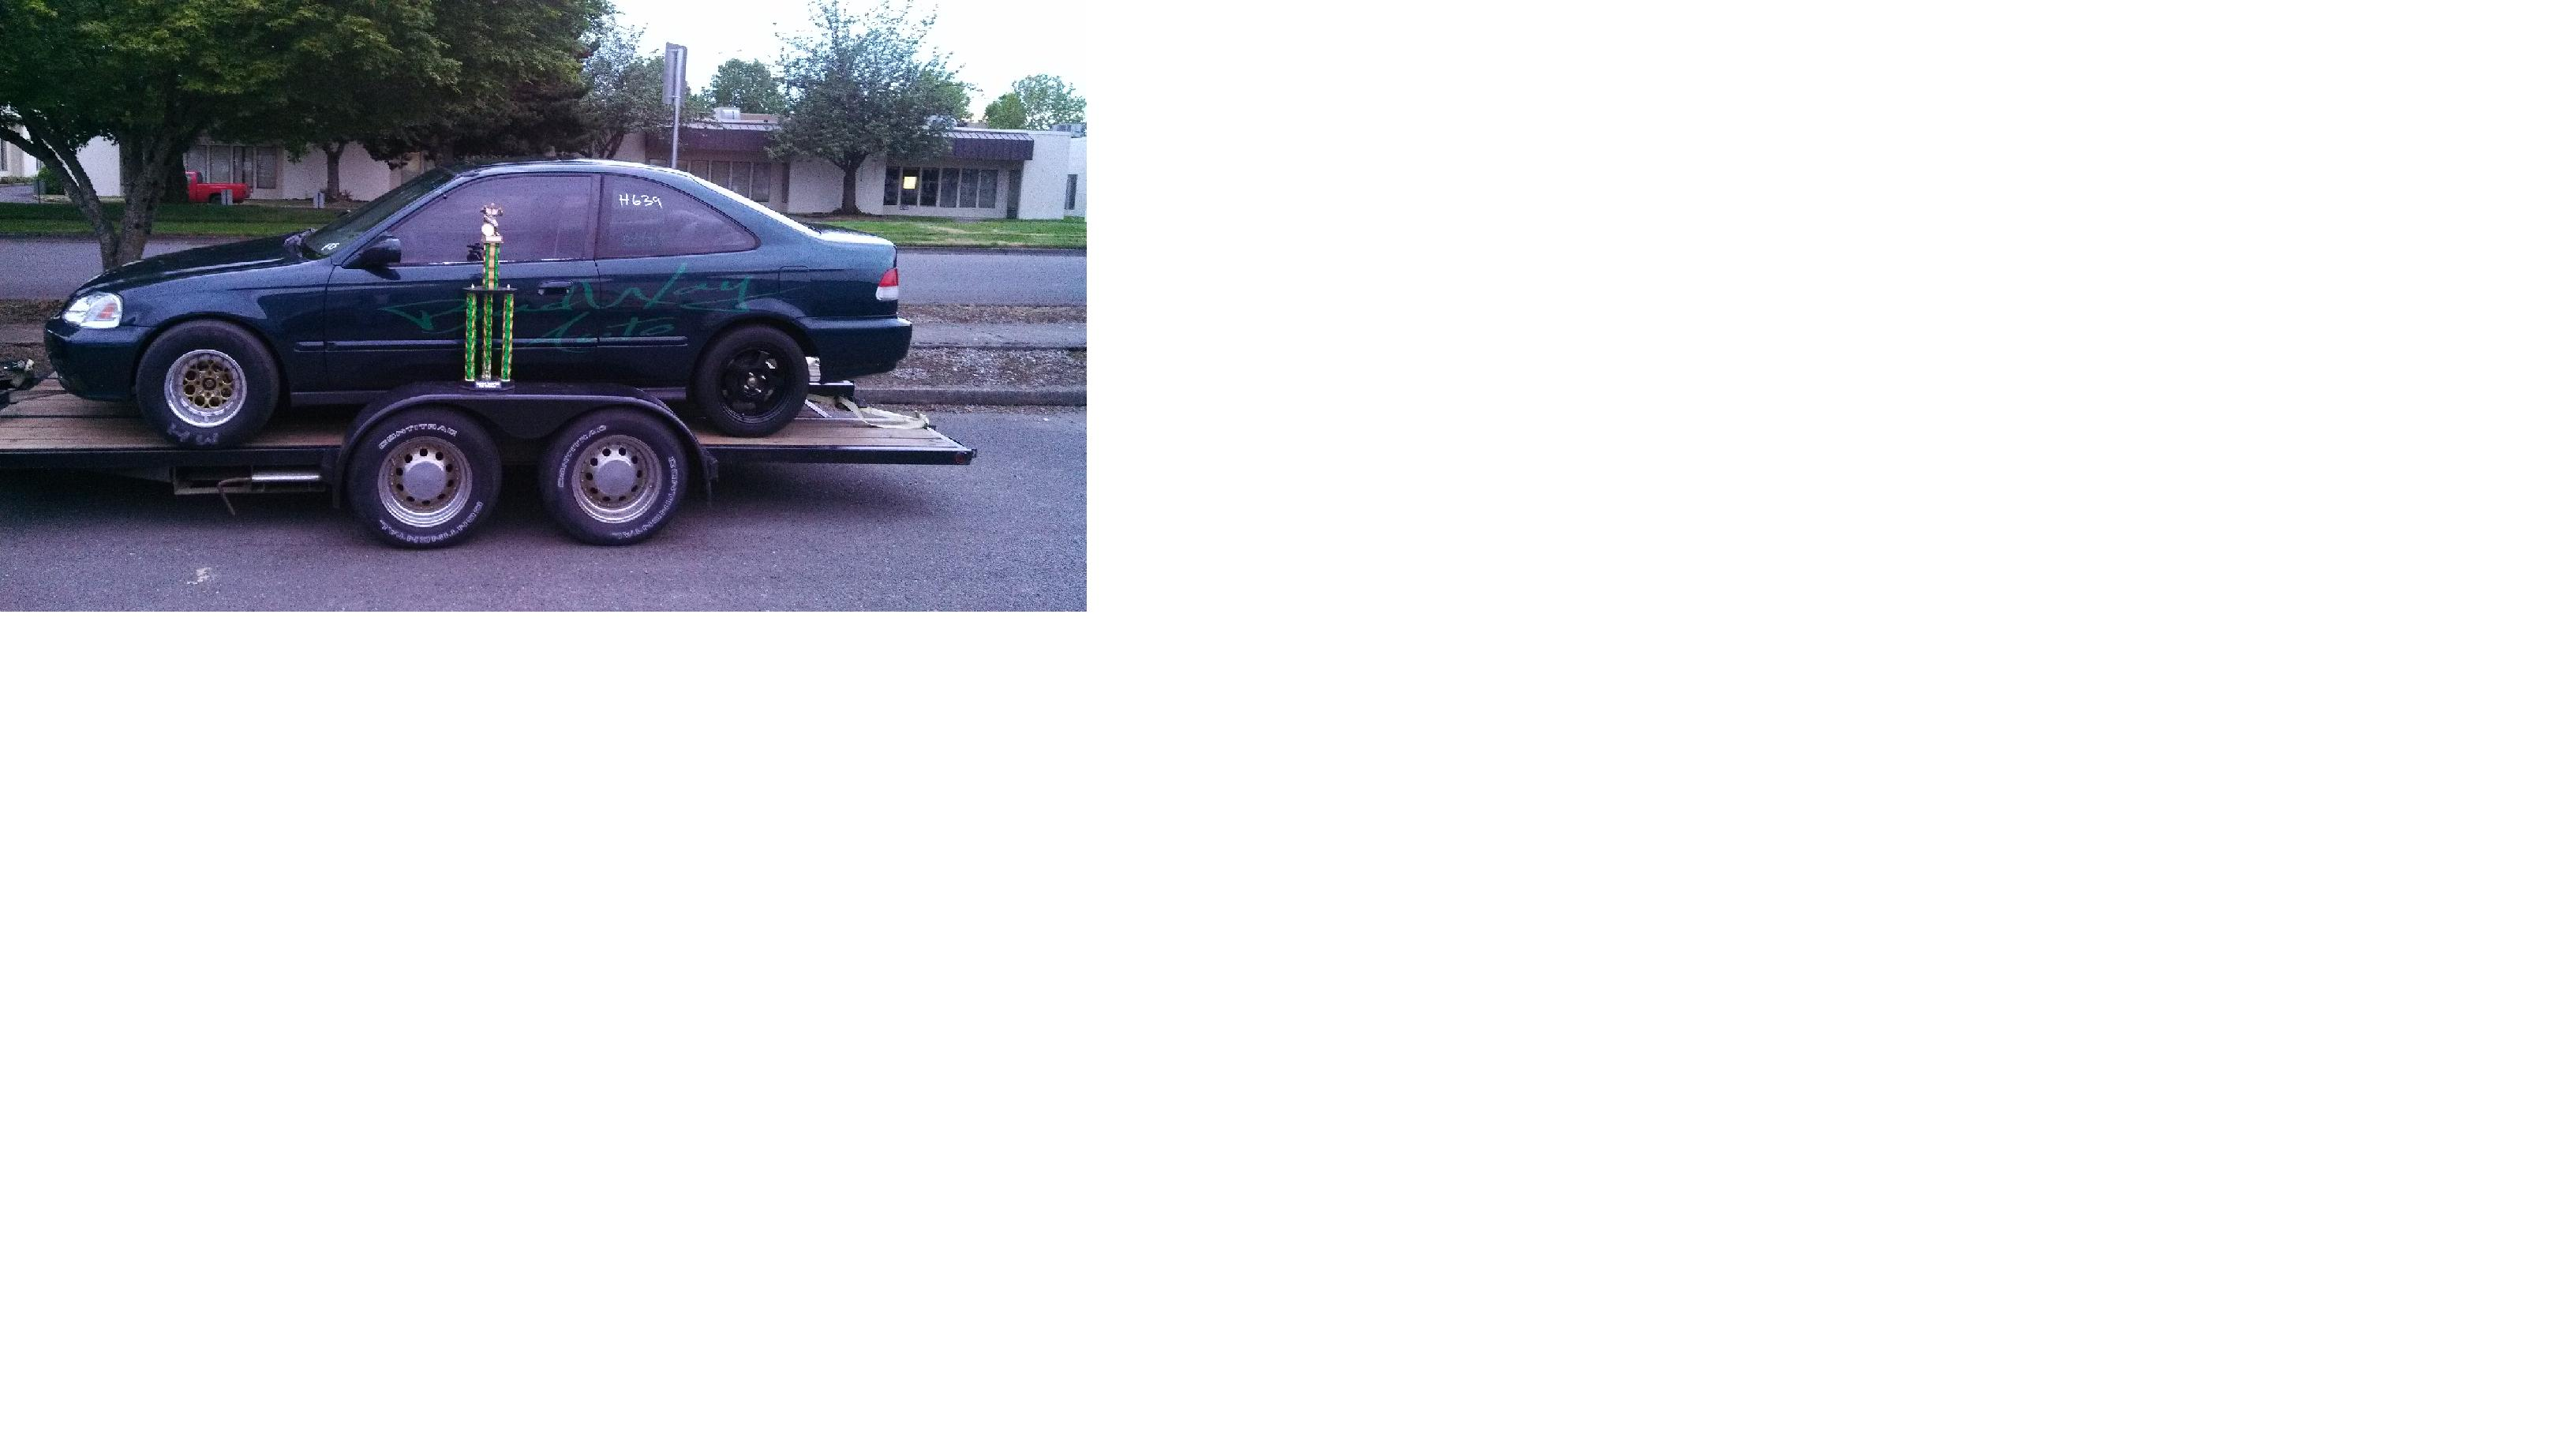 1996 Green Honda Civic EX Coupe picture, mods, upgrades